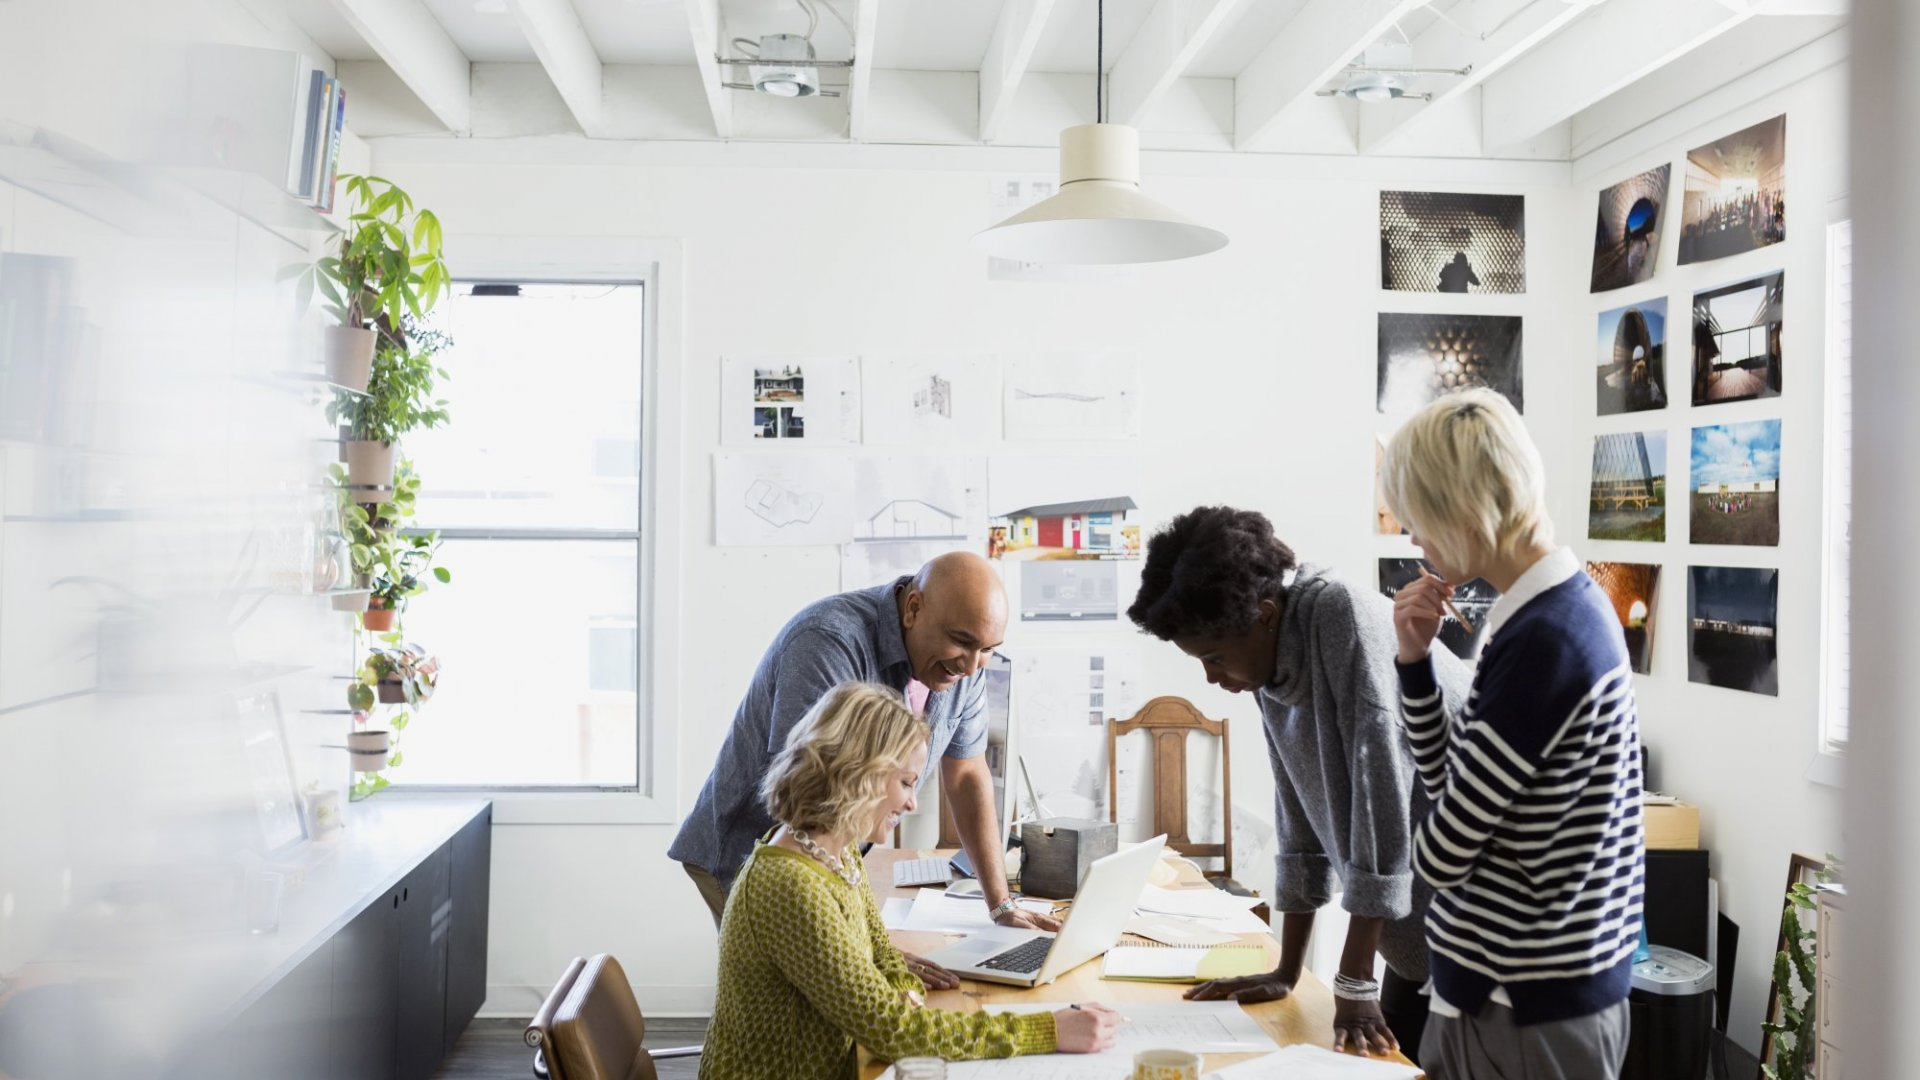 5 Design Principles You Can Apply to Any Part of Your Company